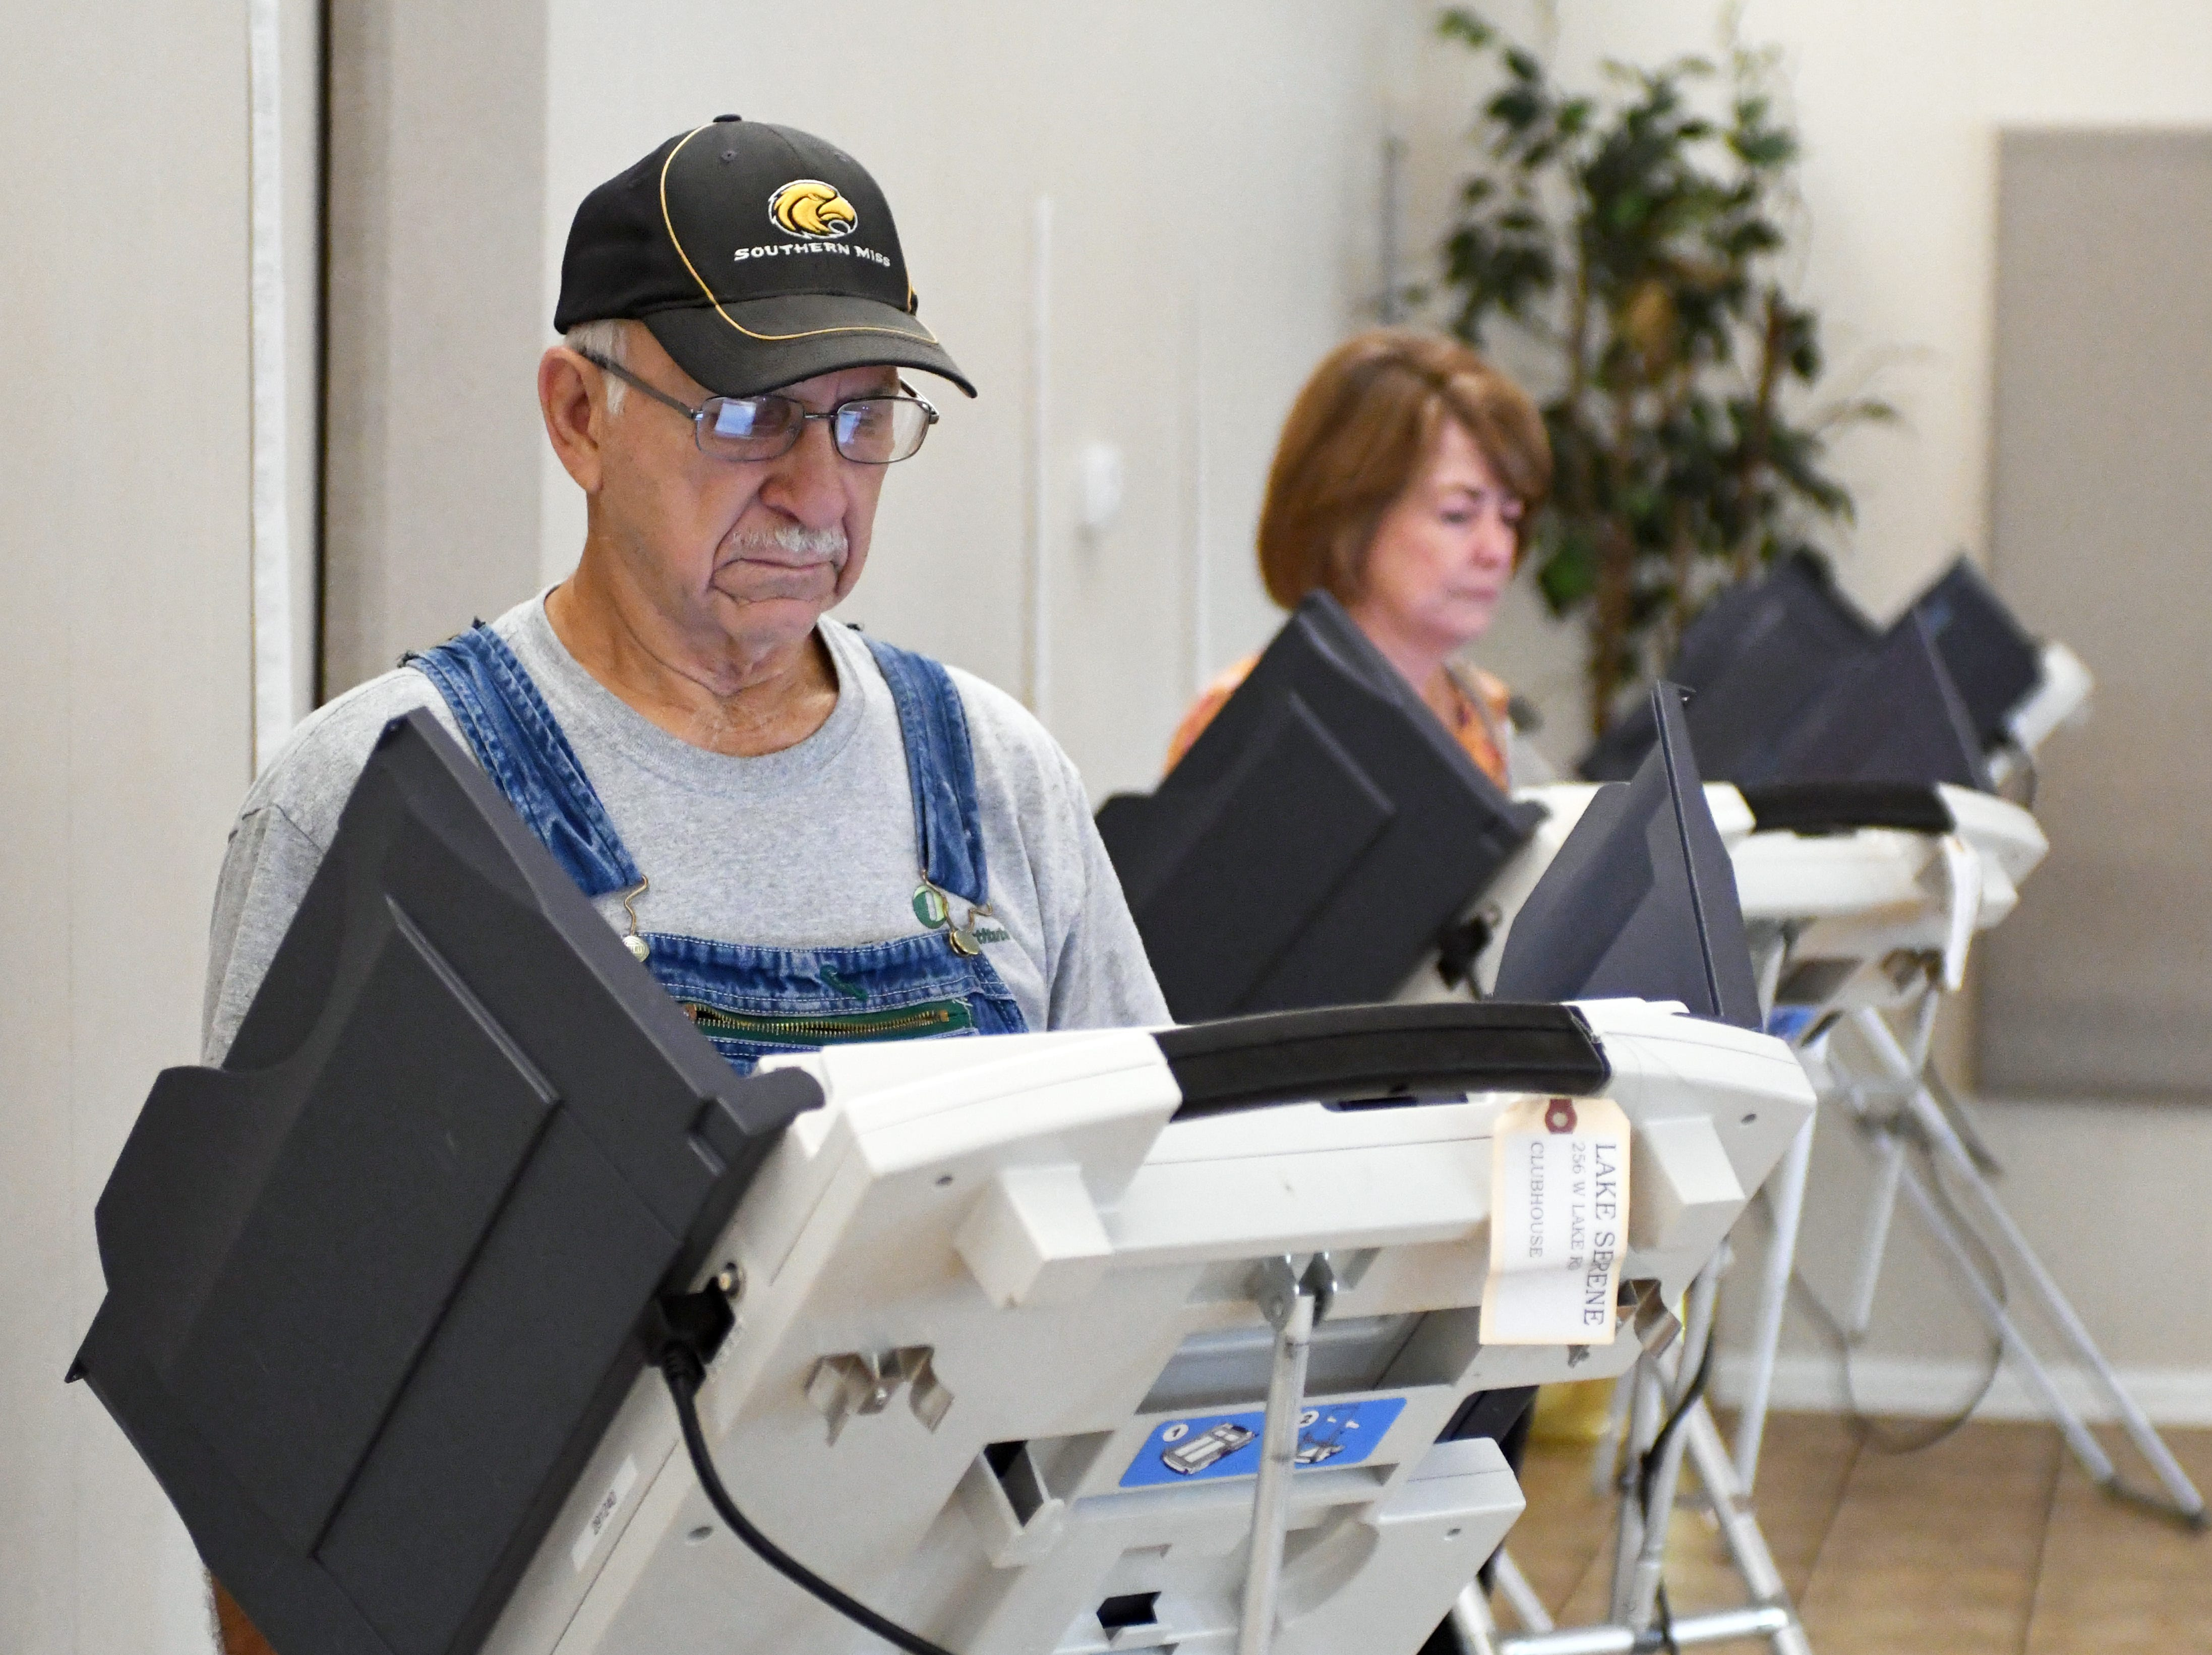 Hattiesburg residents vote during the midterm elections at the Lake Serene precinct on Tuesday, November 6, 2018.